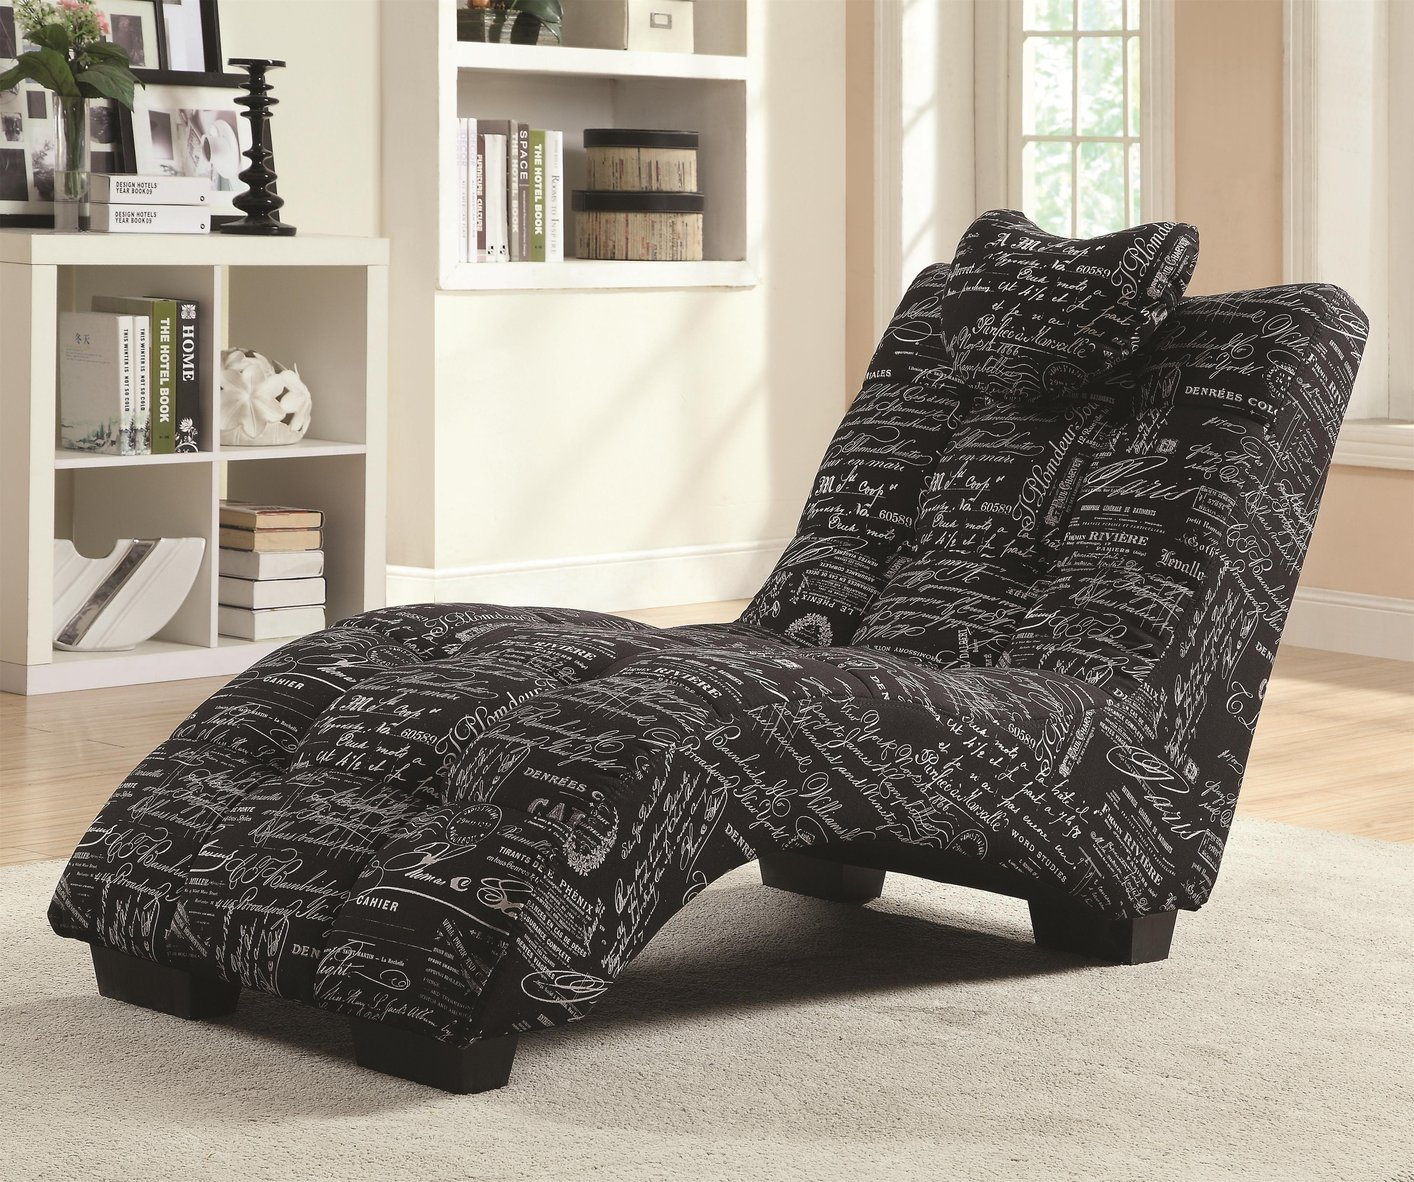 Black Chaise Lounge Sofa Outline Chaise Longue Sofa By ...